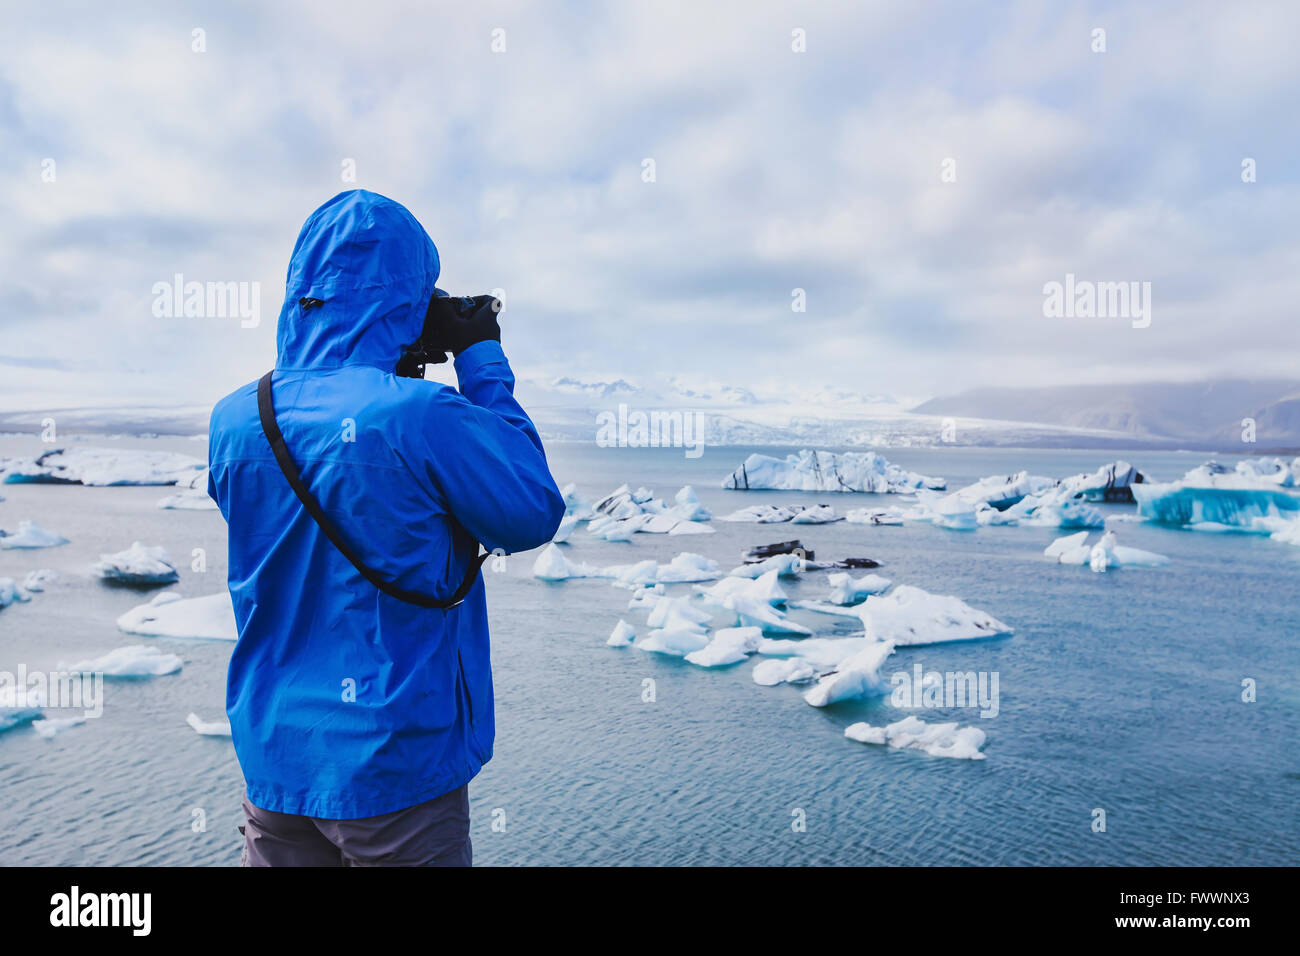 Photographe de voyage nature, personne prenant photo d'icebergs de l'Arctique en Islande Photo Stock